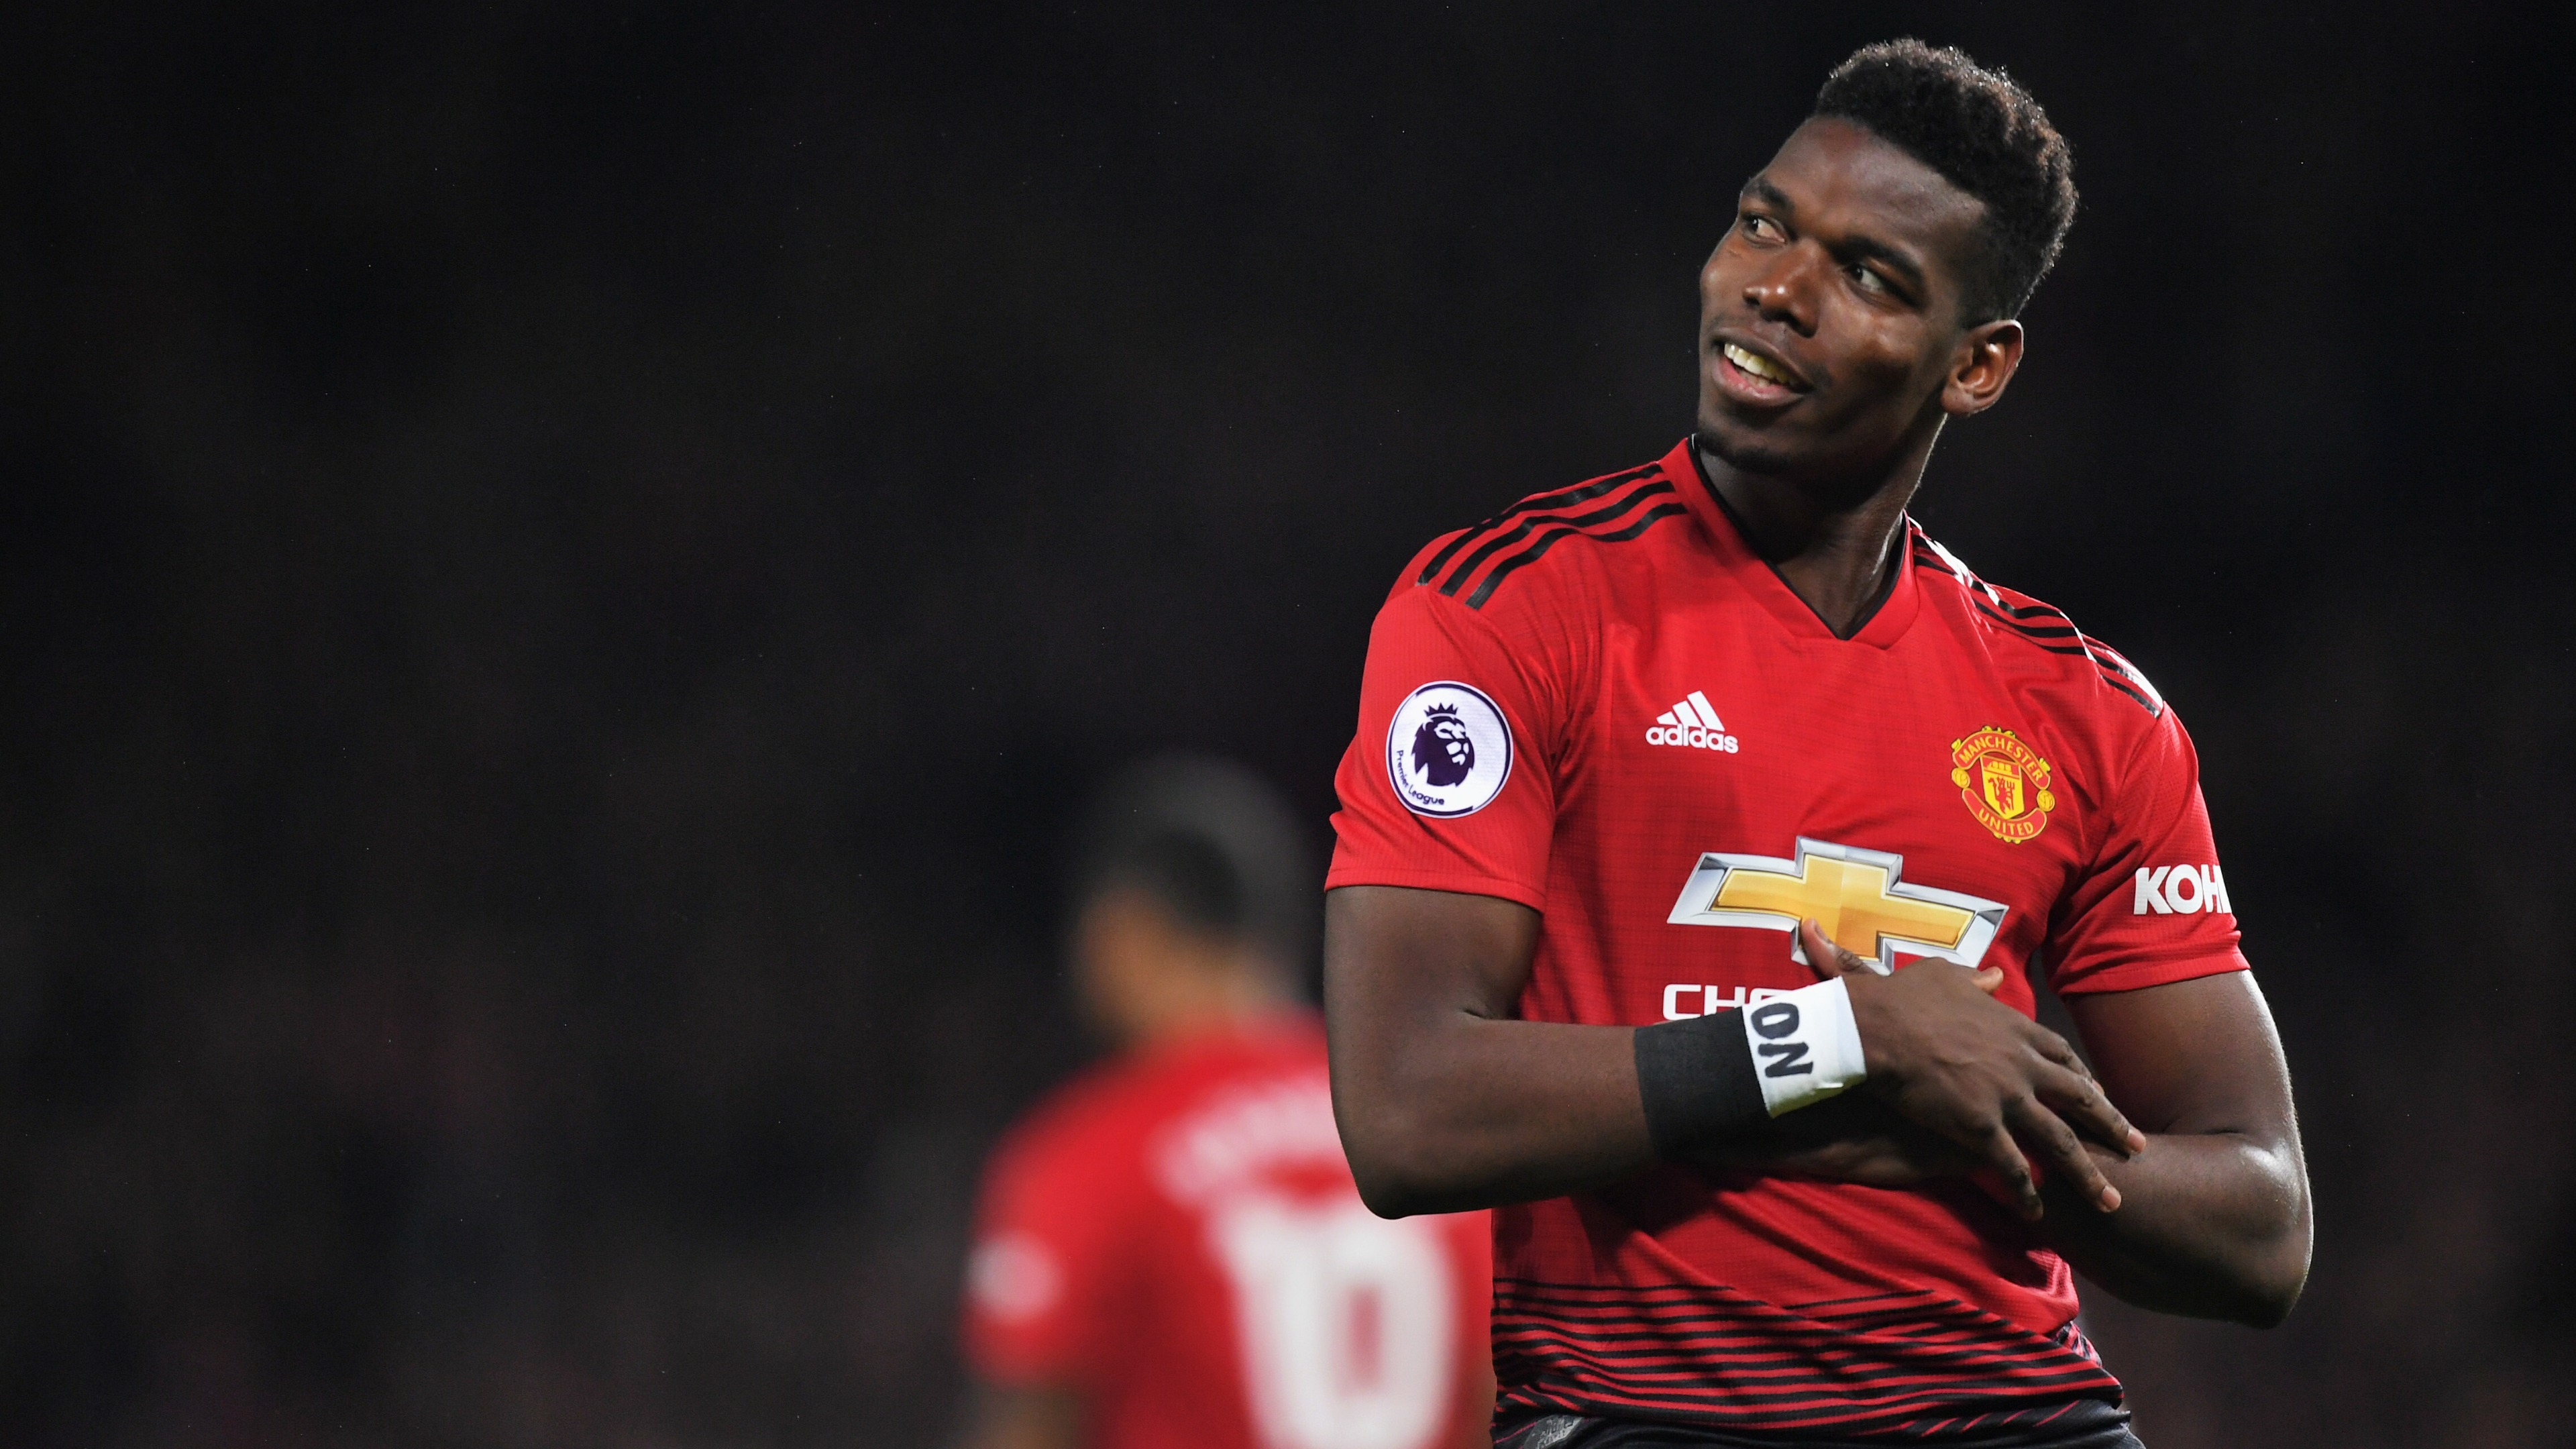 Paul Pogba transfer news: Manchester United star posts 88 Instagram stories  in 24 hours with his club future still uncertain | Goal.com